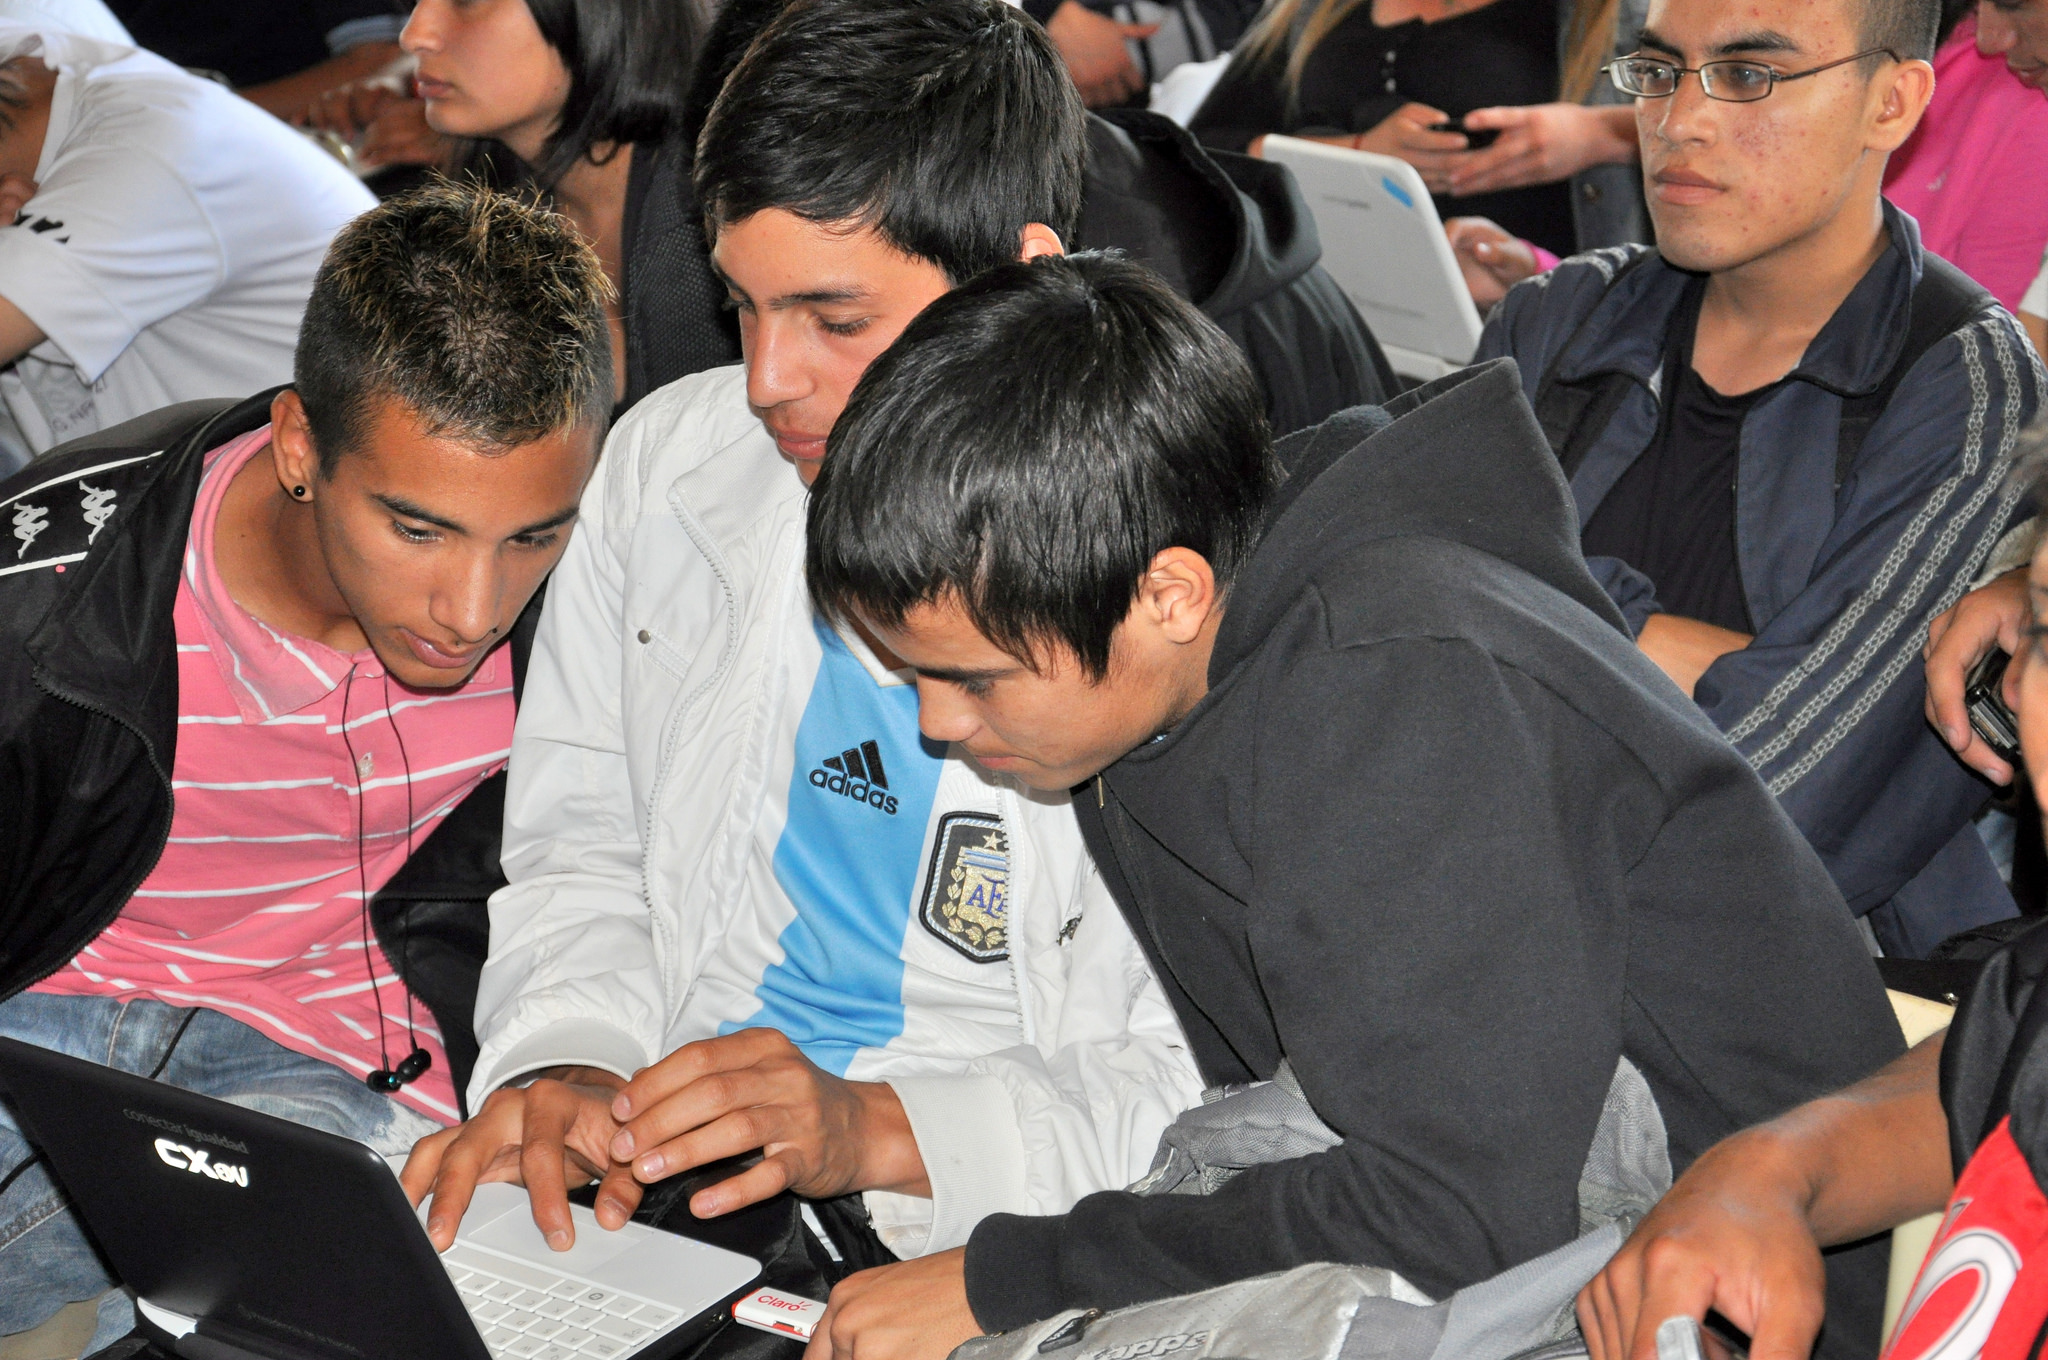 Mexico, Colombia, Brazil among countries that rank poorly in PISA test